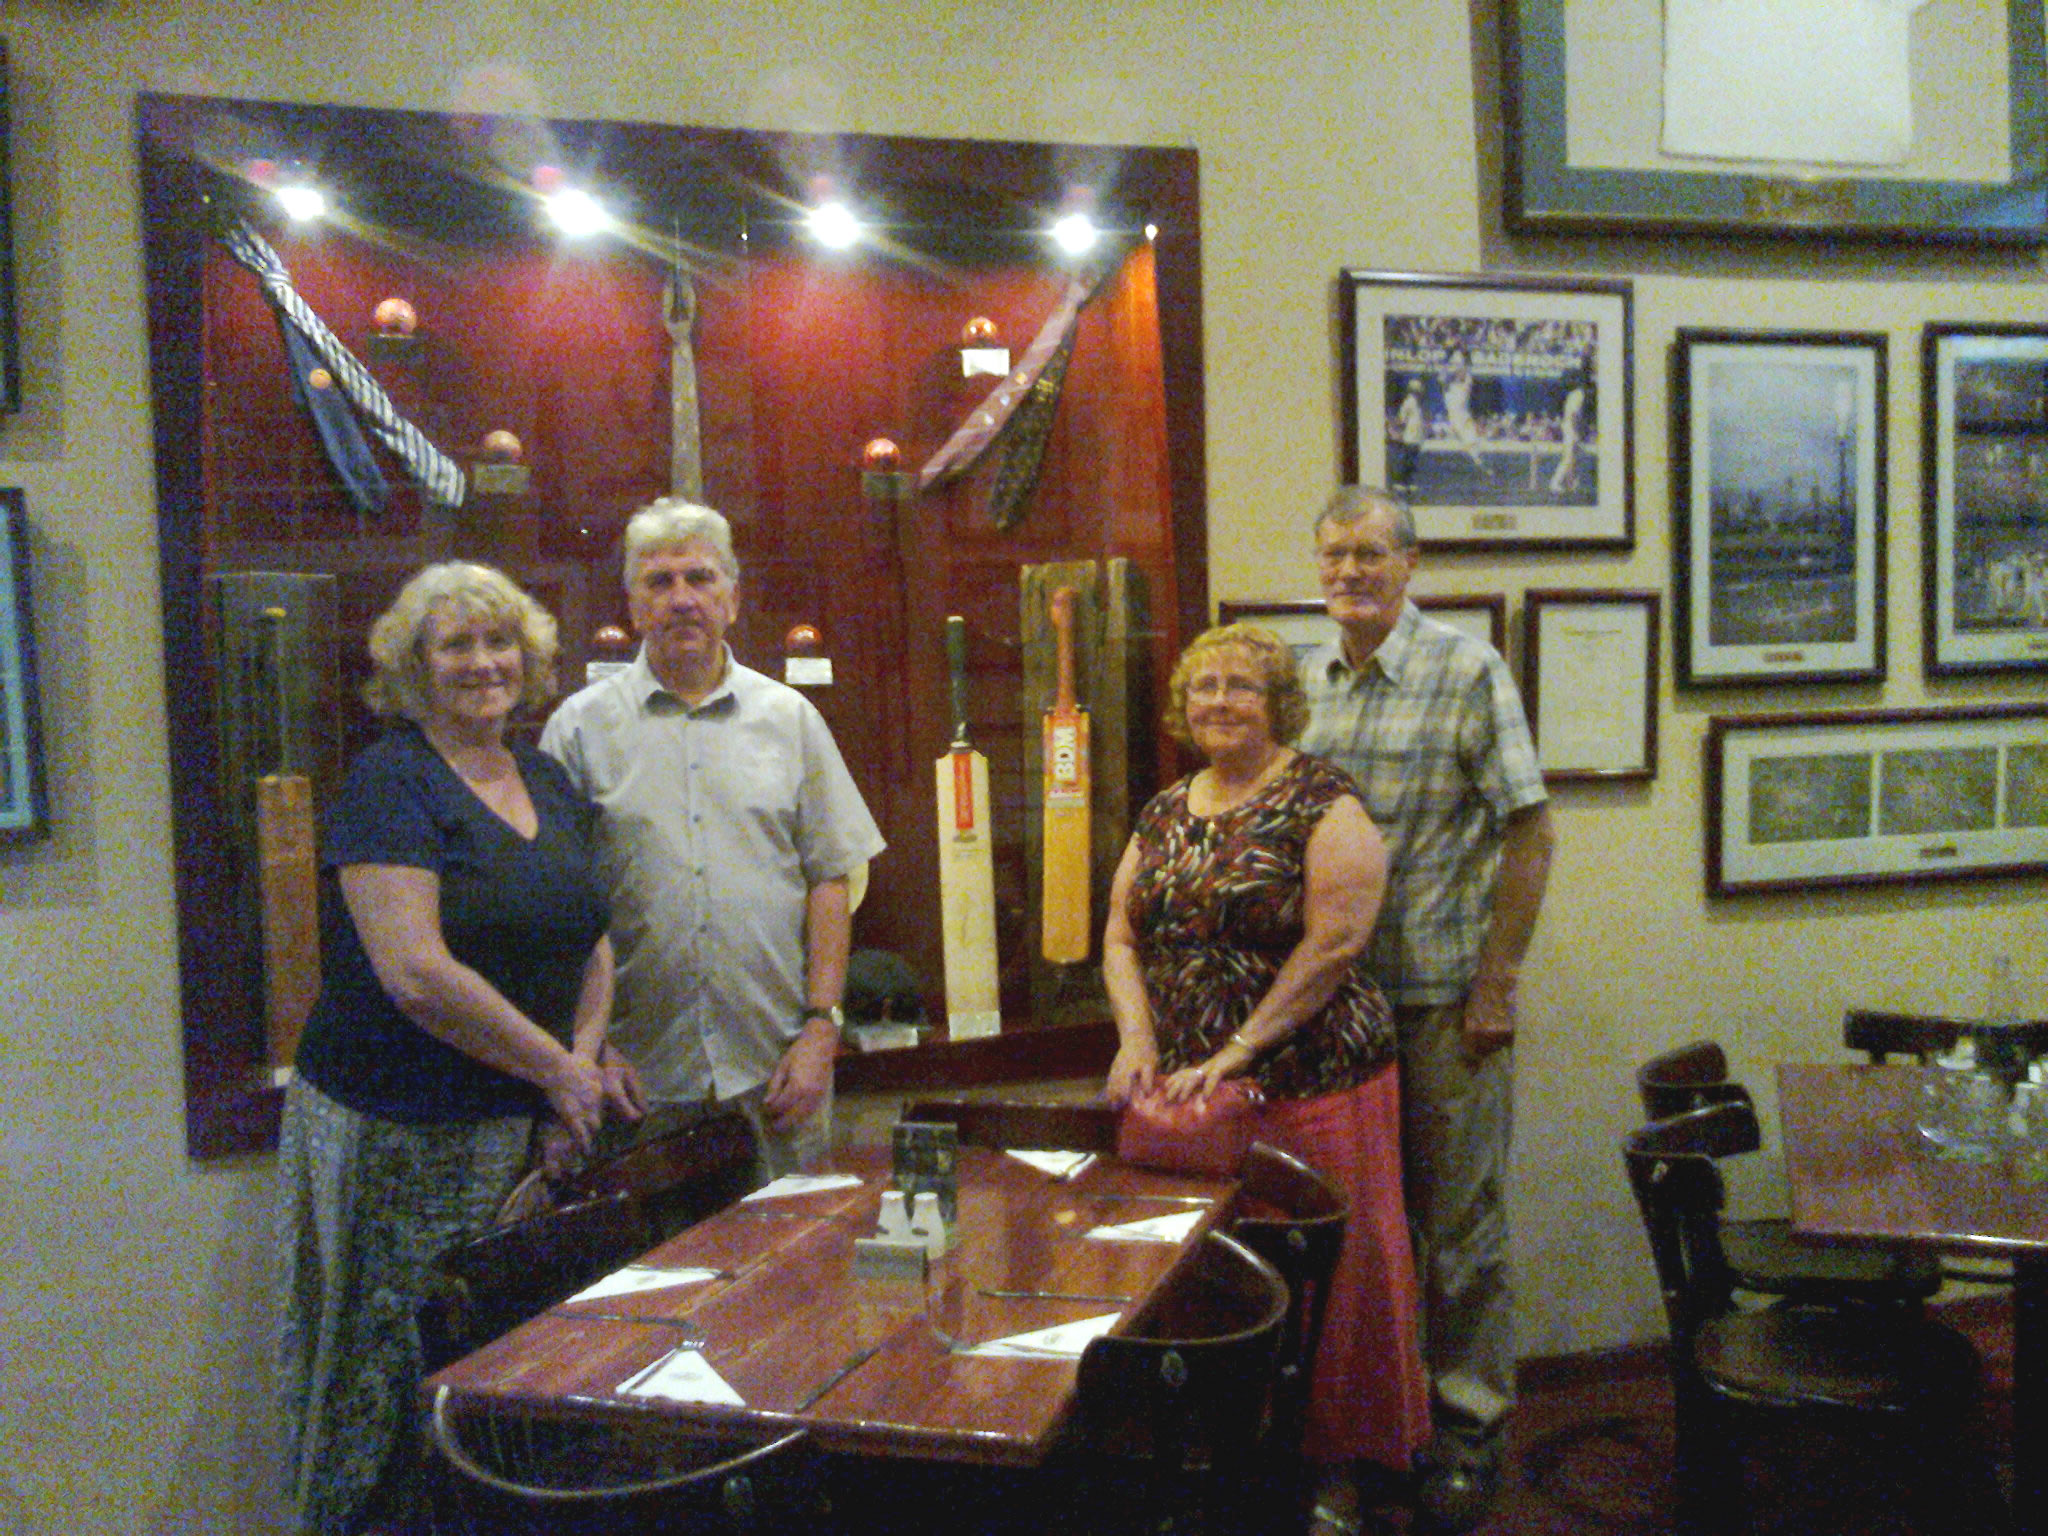 Pat & Garry and Monica and John Kirby at the Cricket Club - a specail restaurent for Criket Fans